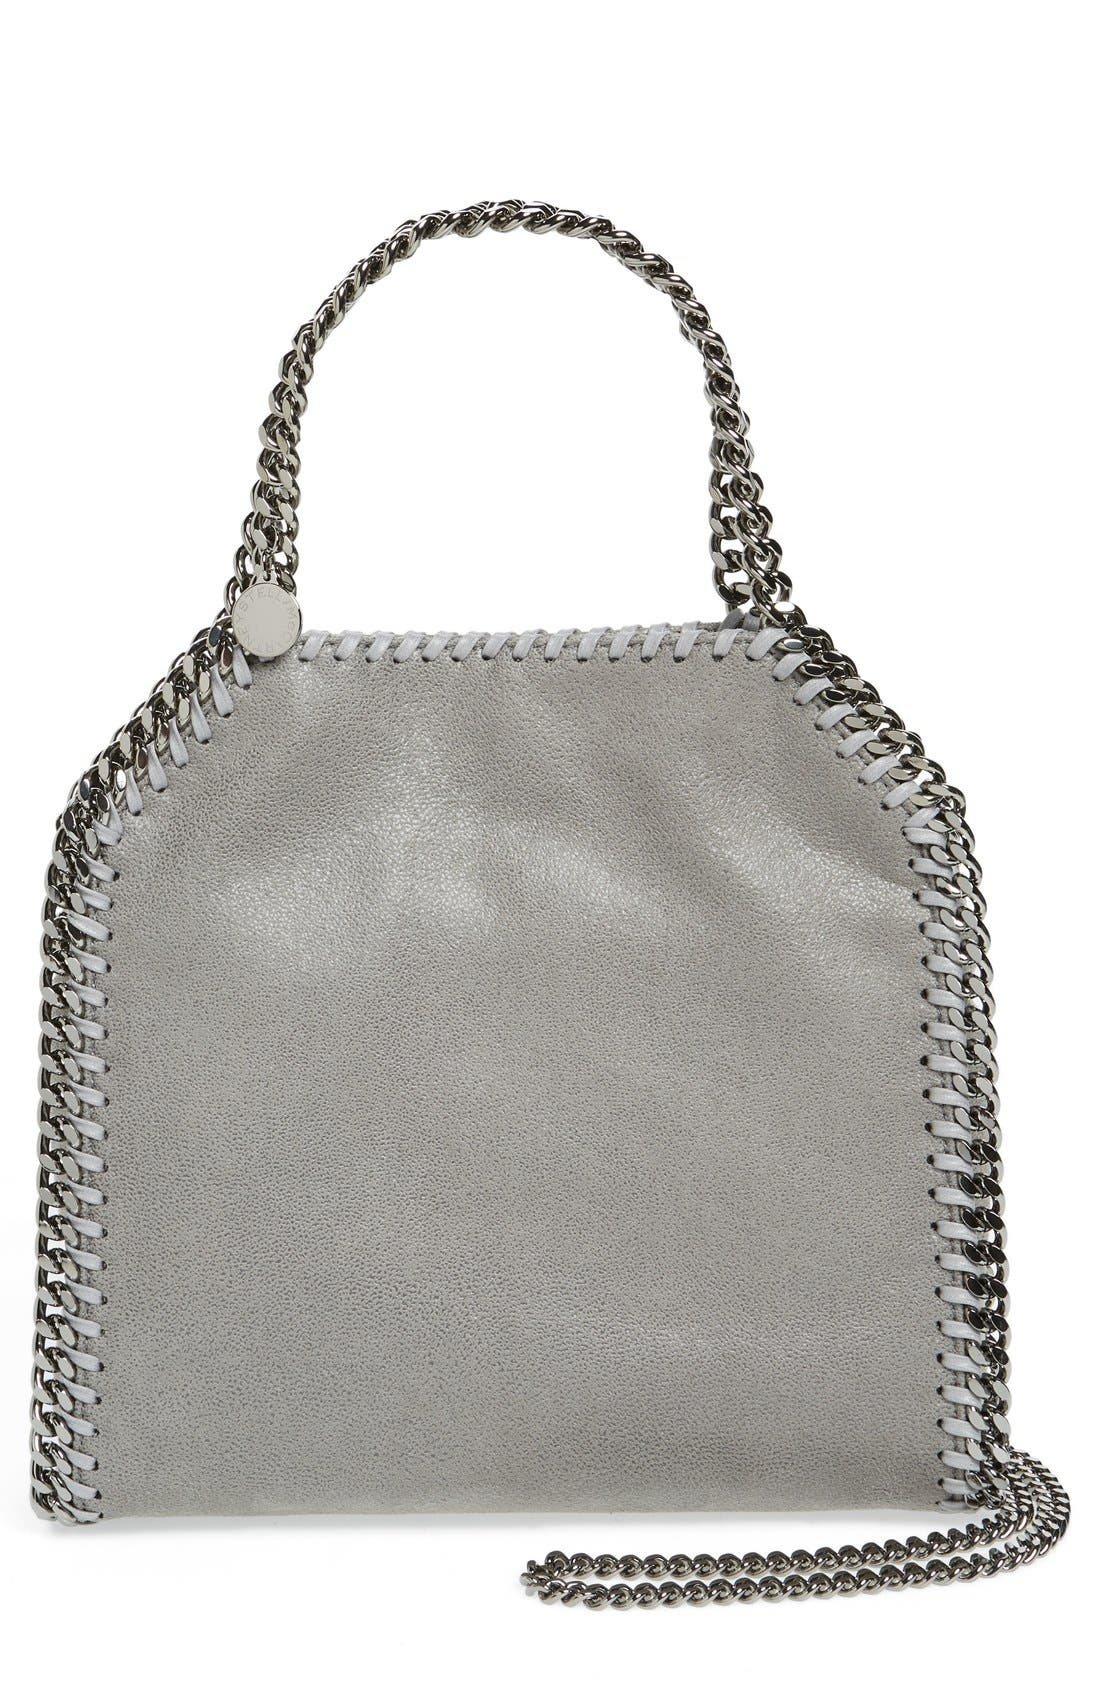 Alternate Image 1 Selected - Stella McCartney 'Mini Falabella - Shaggy Deer' Faux Leather Tote